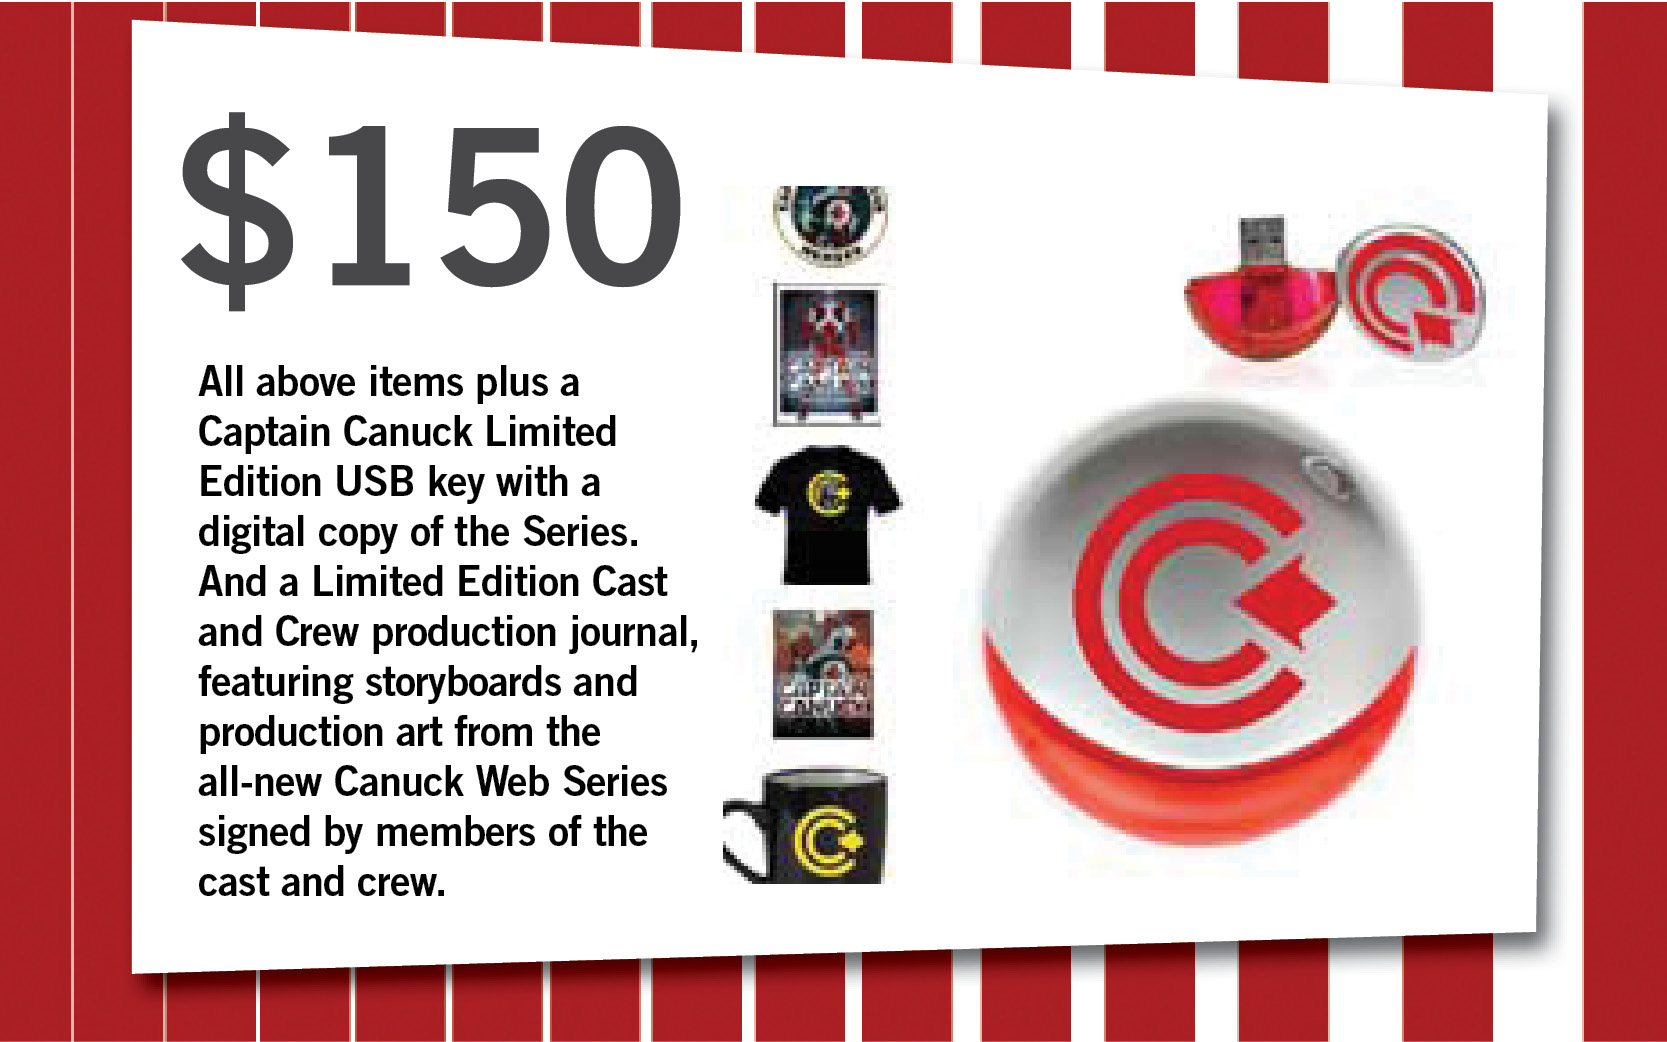 All above items plus a Captain Canuck Limited Edition USB key with a digital copy of the Series. And a Limited Edition Cast and Crew production journal, featuring storyboards and production art from the all-new Canuck Web Series signed by members of the cast and crew.